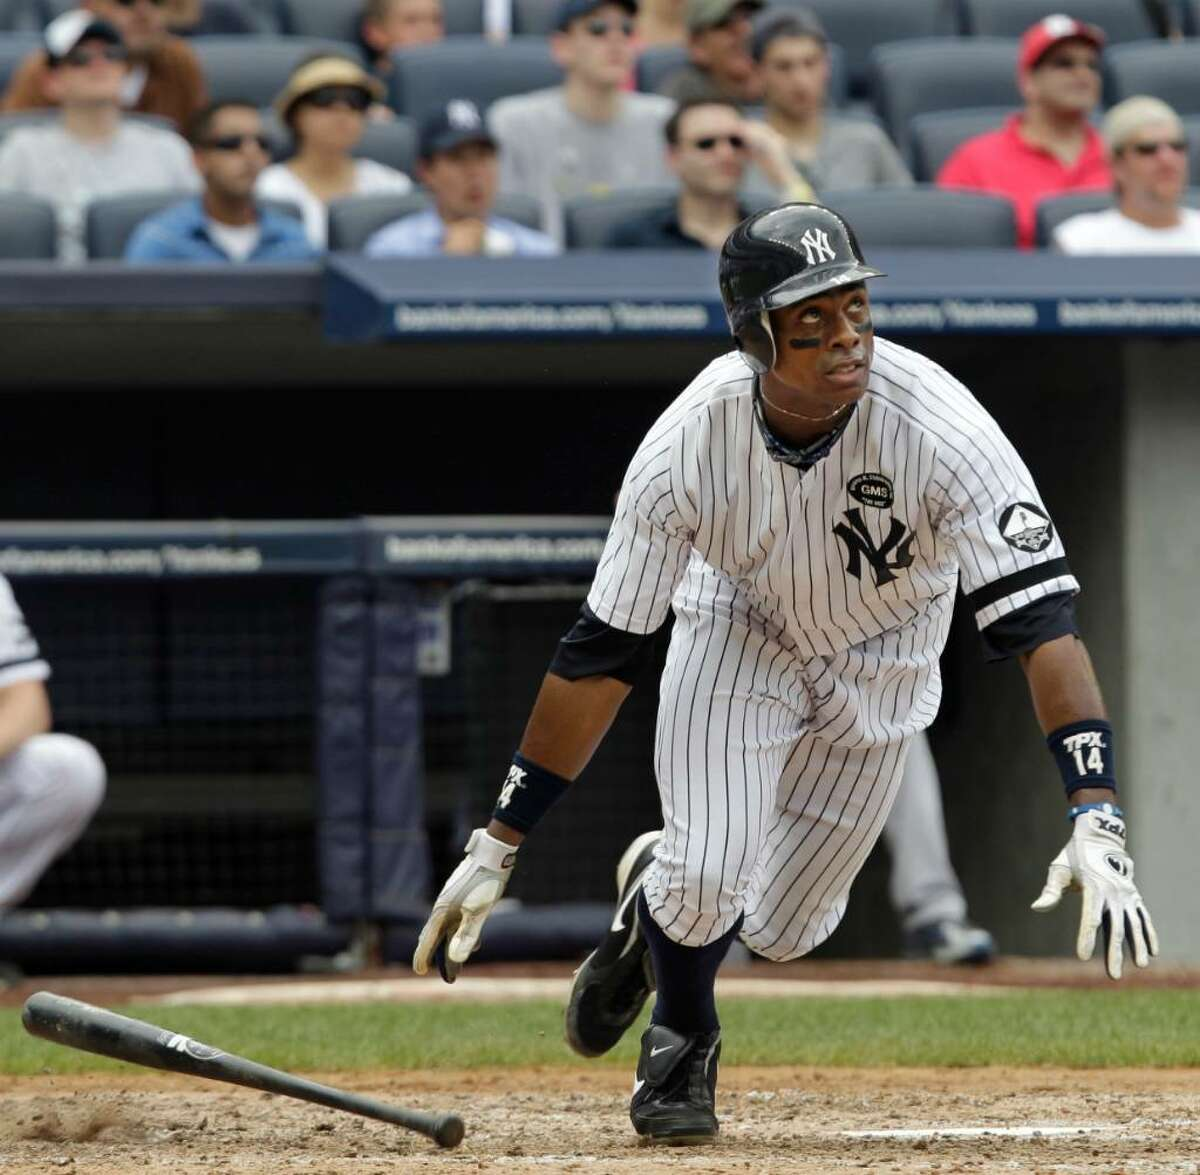 New York Yankees' Curtis Granderson watches his fourth-inning solo home run off Kansas City Royals starting pitcher Sean O' Sullivan in a baseball game at Yankee Stadium on Sunday, July 25, 2010, in New York. (AP Photo/Kathy Willens)